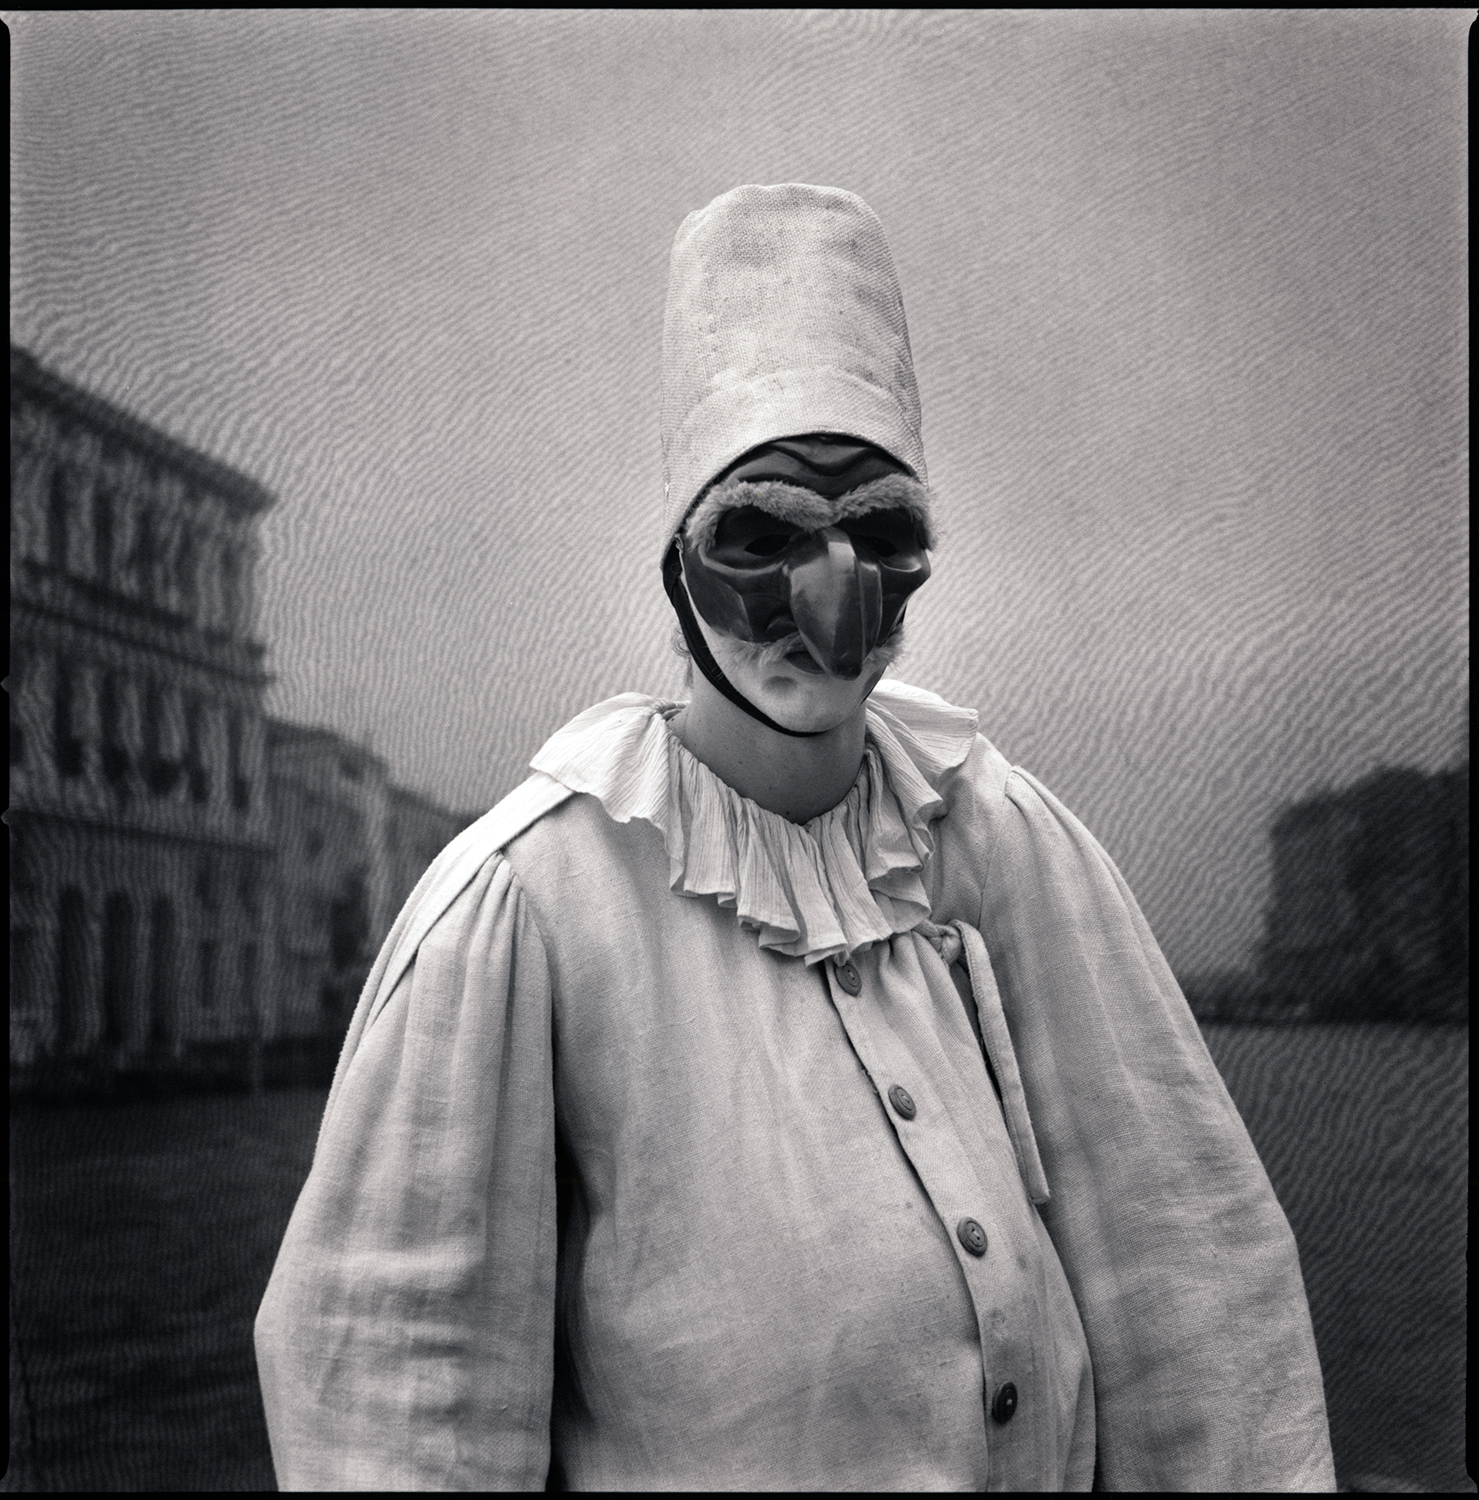 Marco Andreatta as Pulcinella, from the series Comedy of Double Meaning